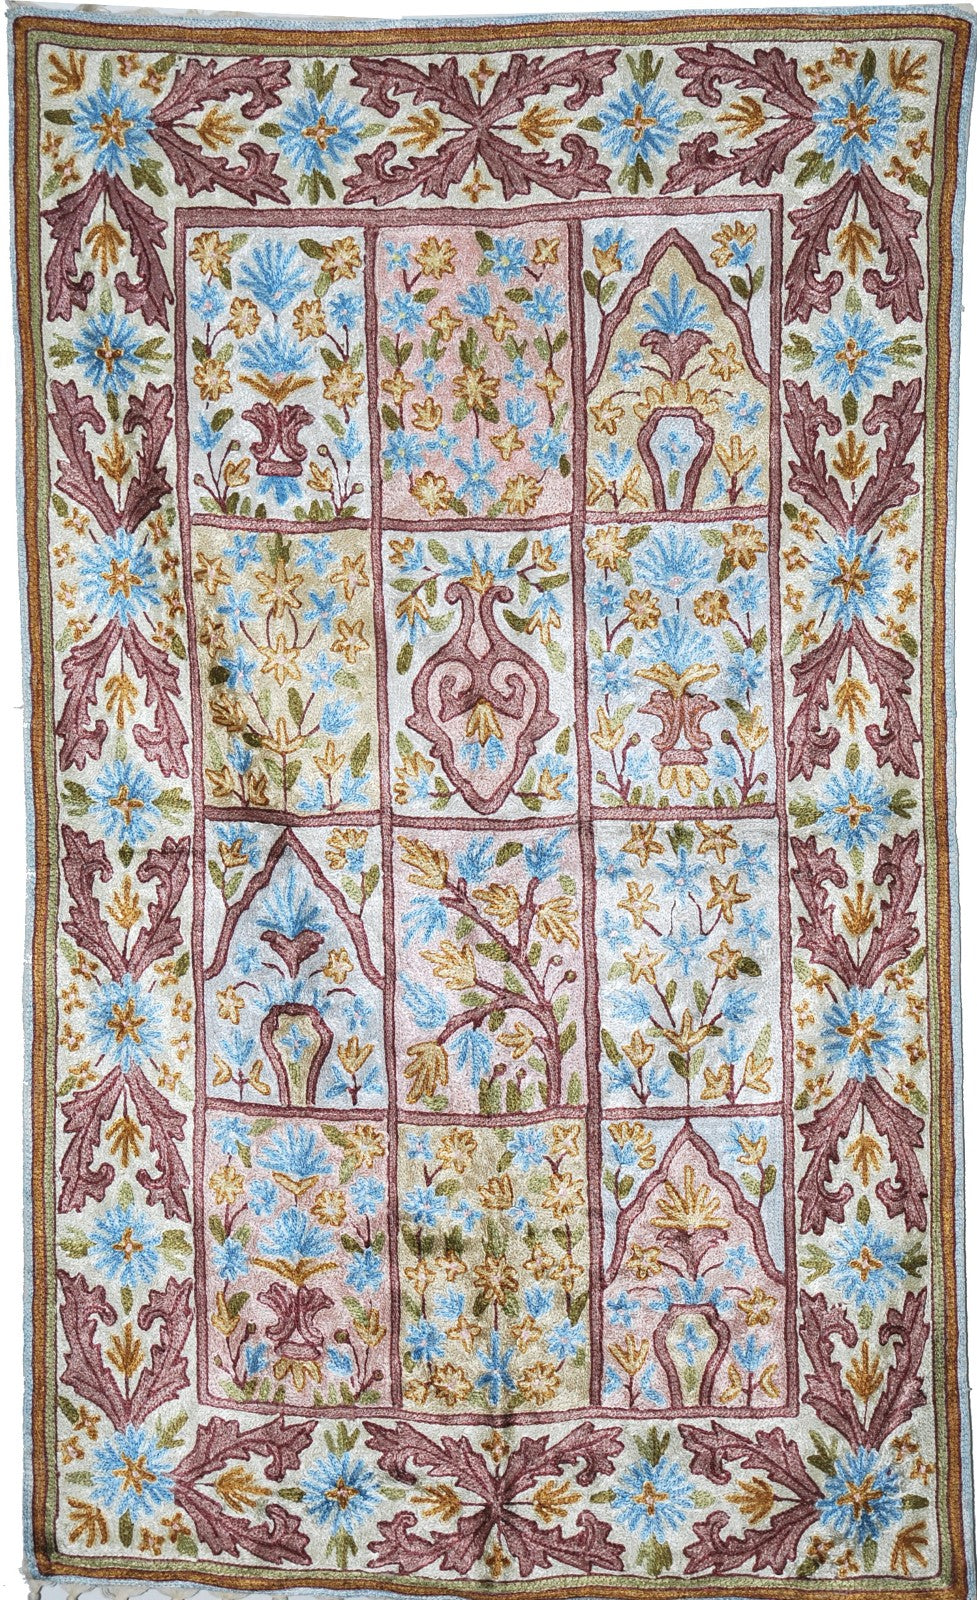 ChainStitch Tapestry Silk Rug, Multicolor Embroidery 2.5x4 feet #CWR10109